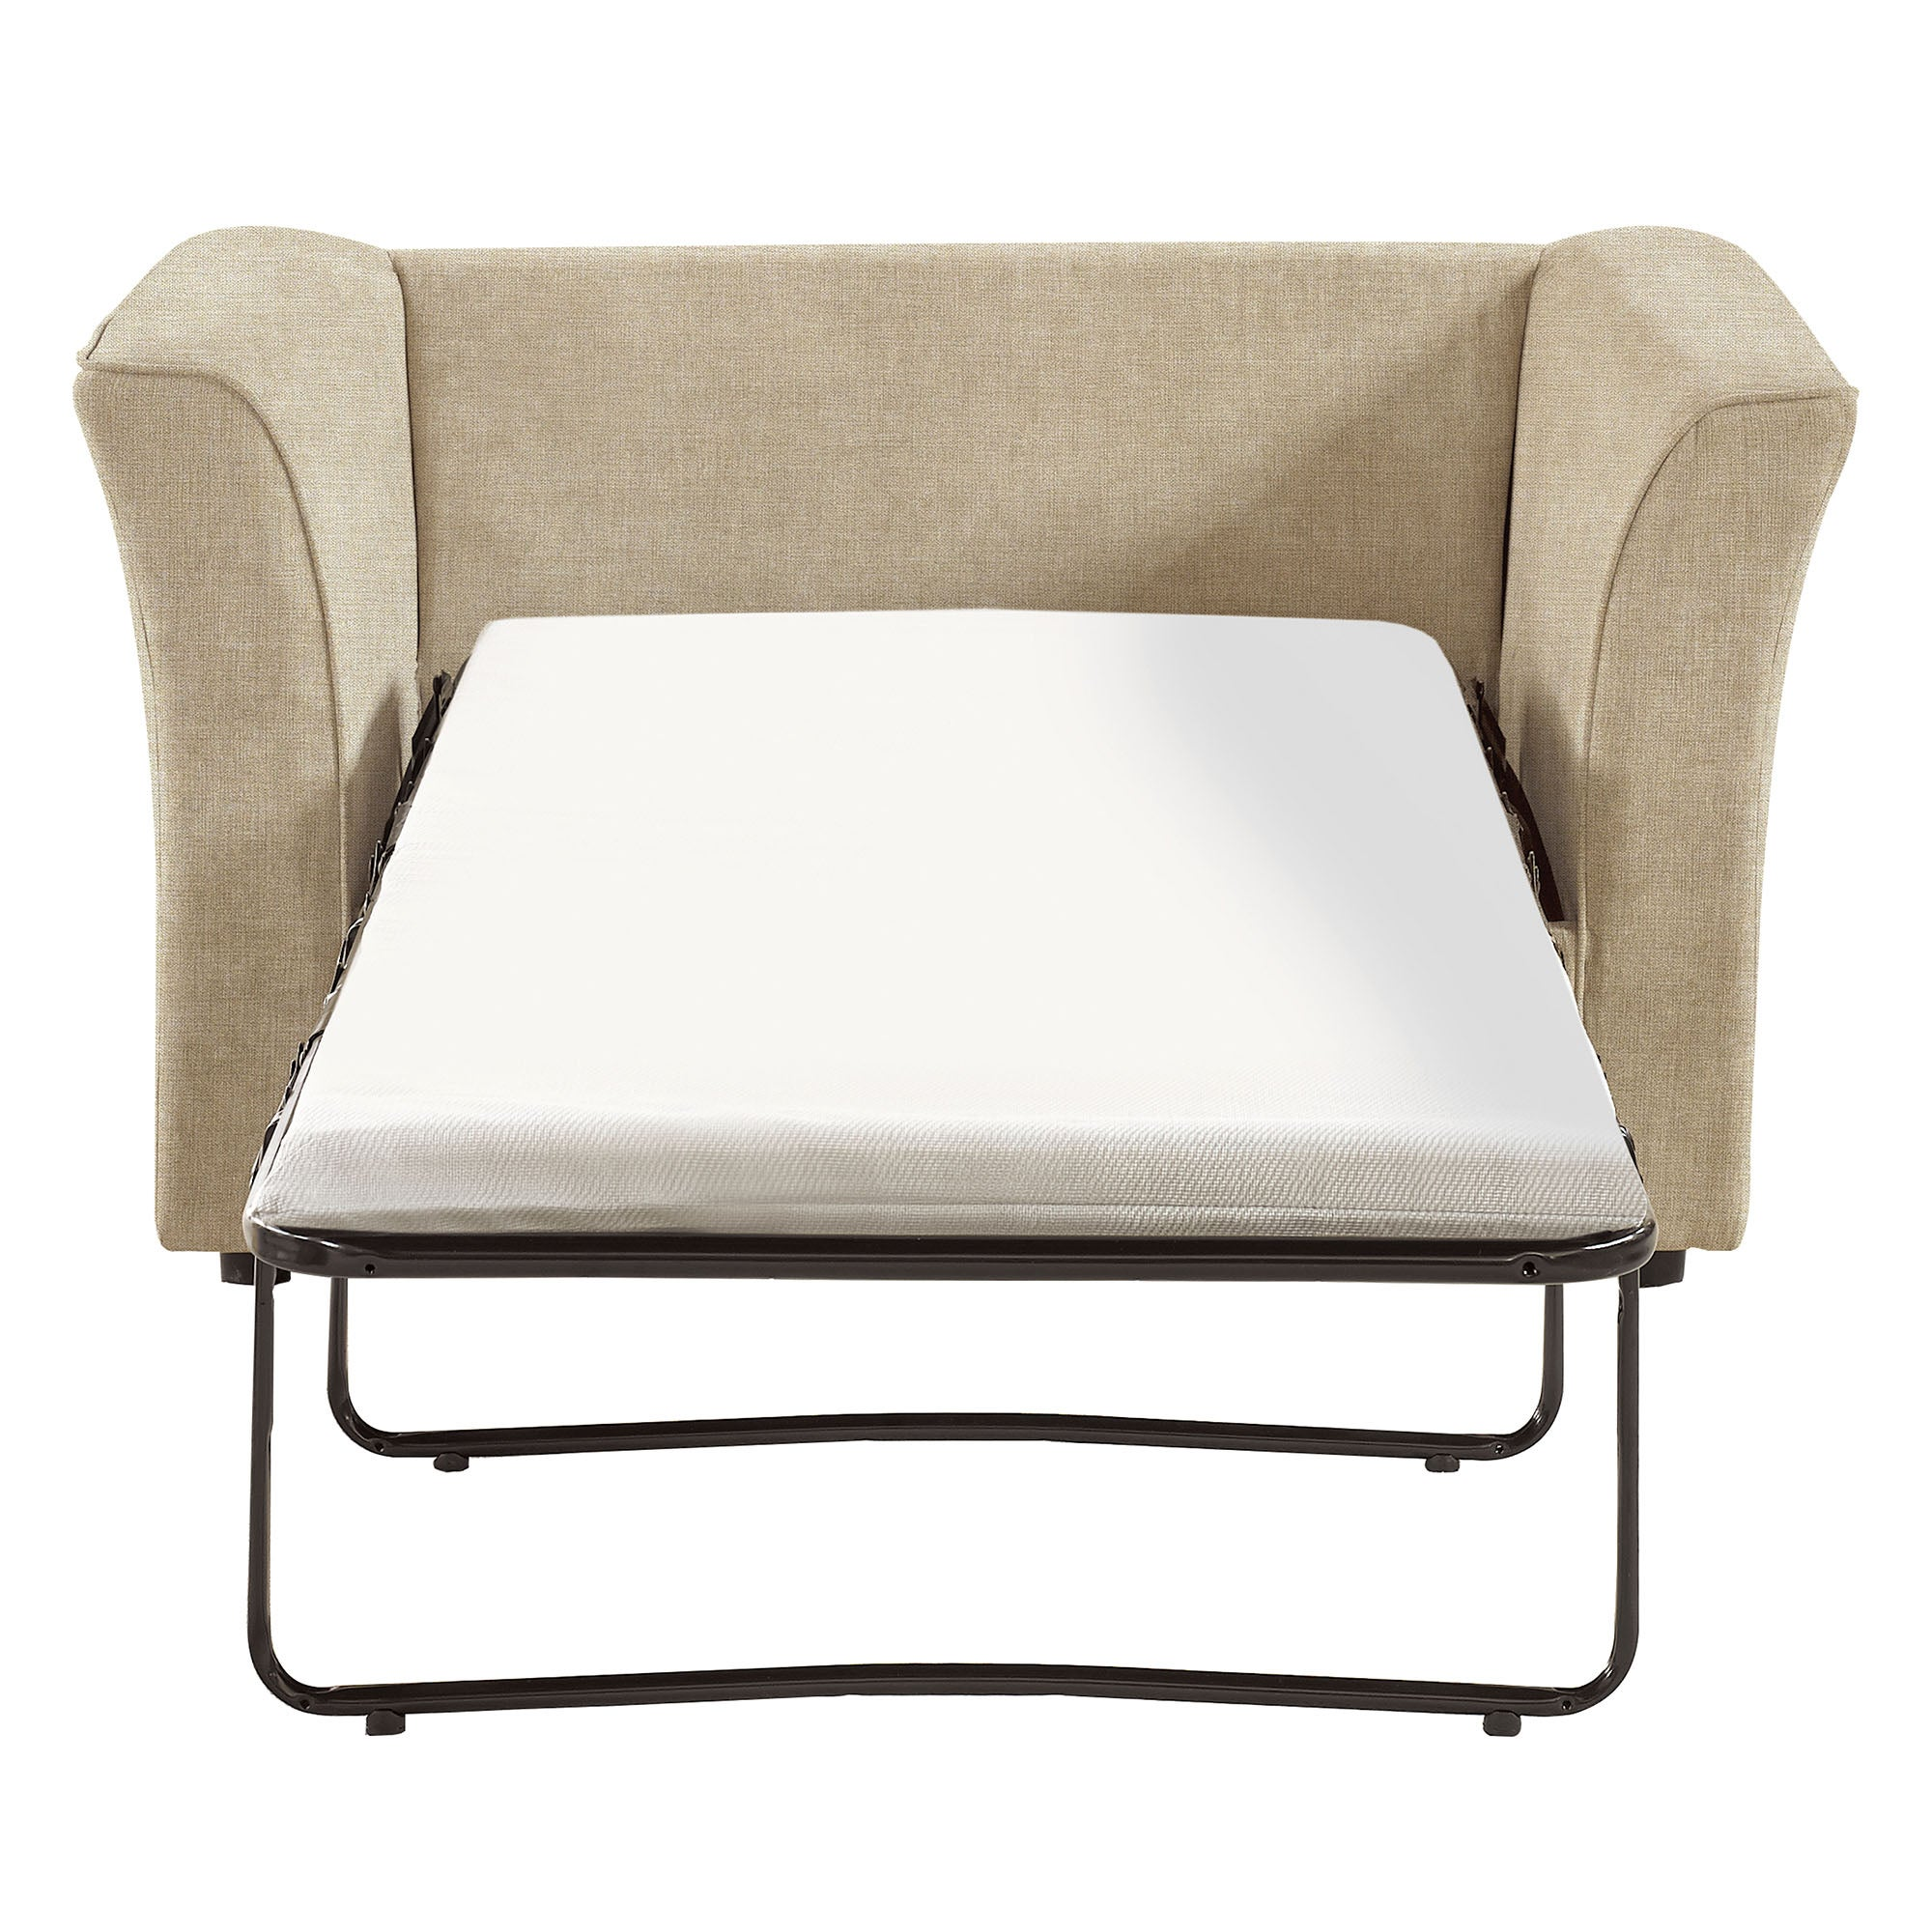 Harlow Chairbed